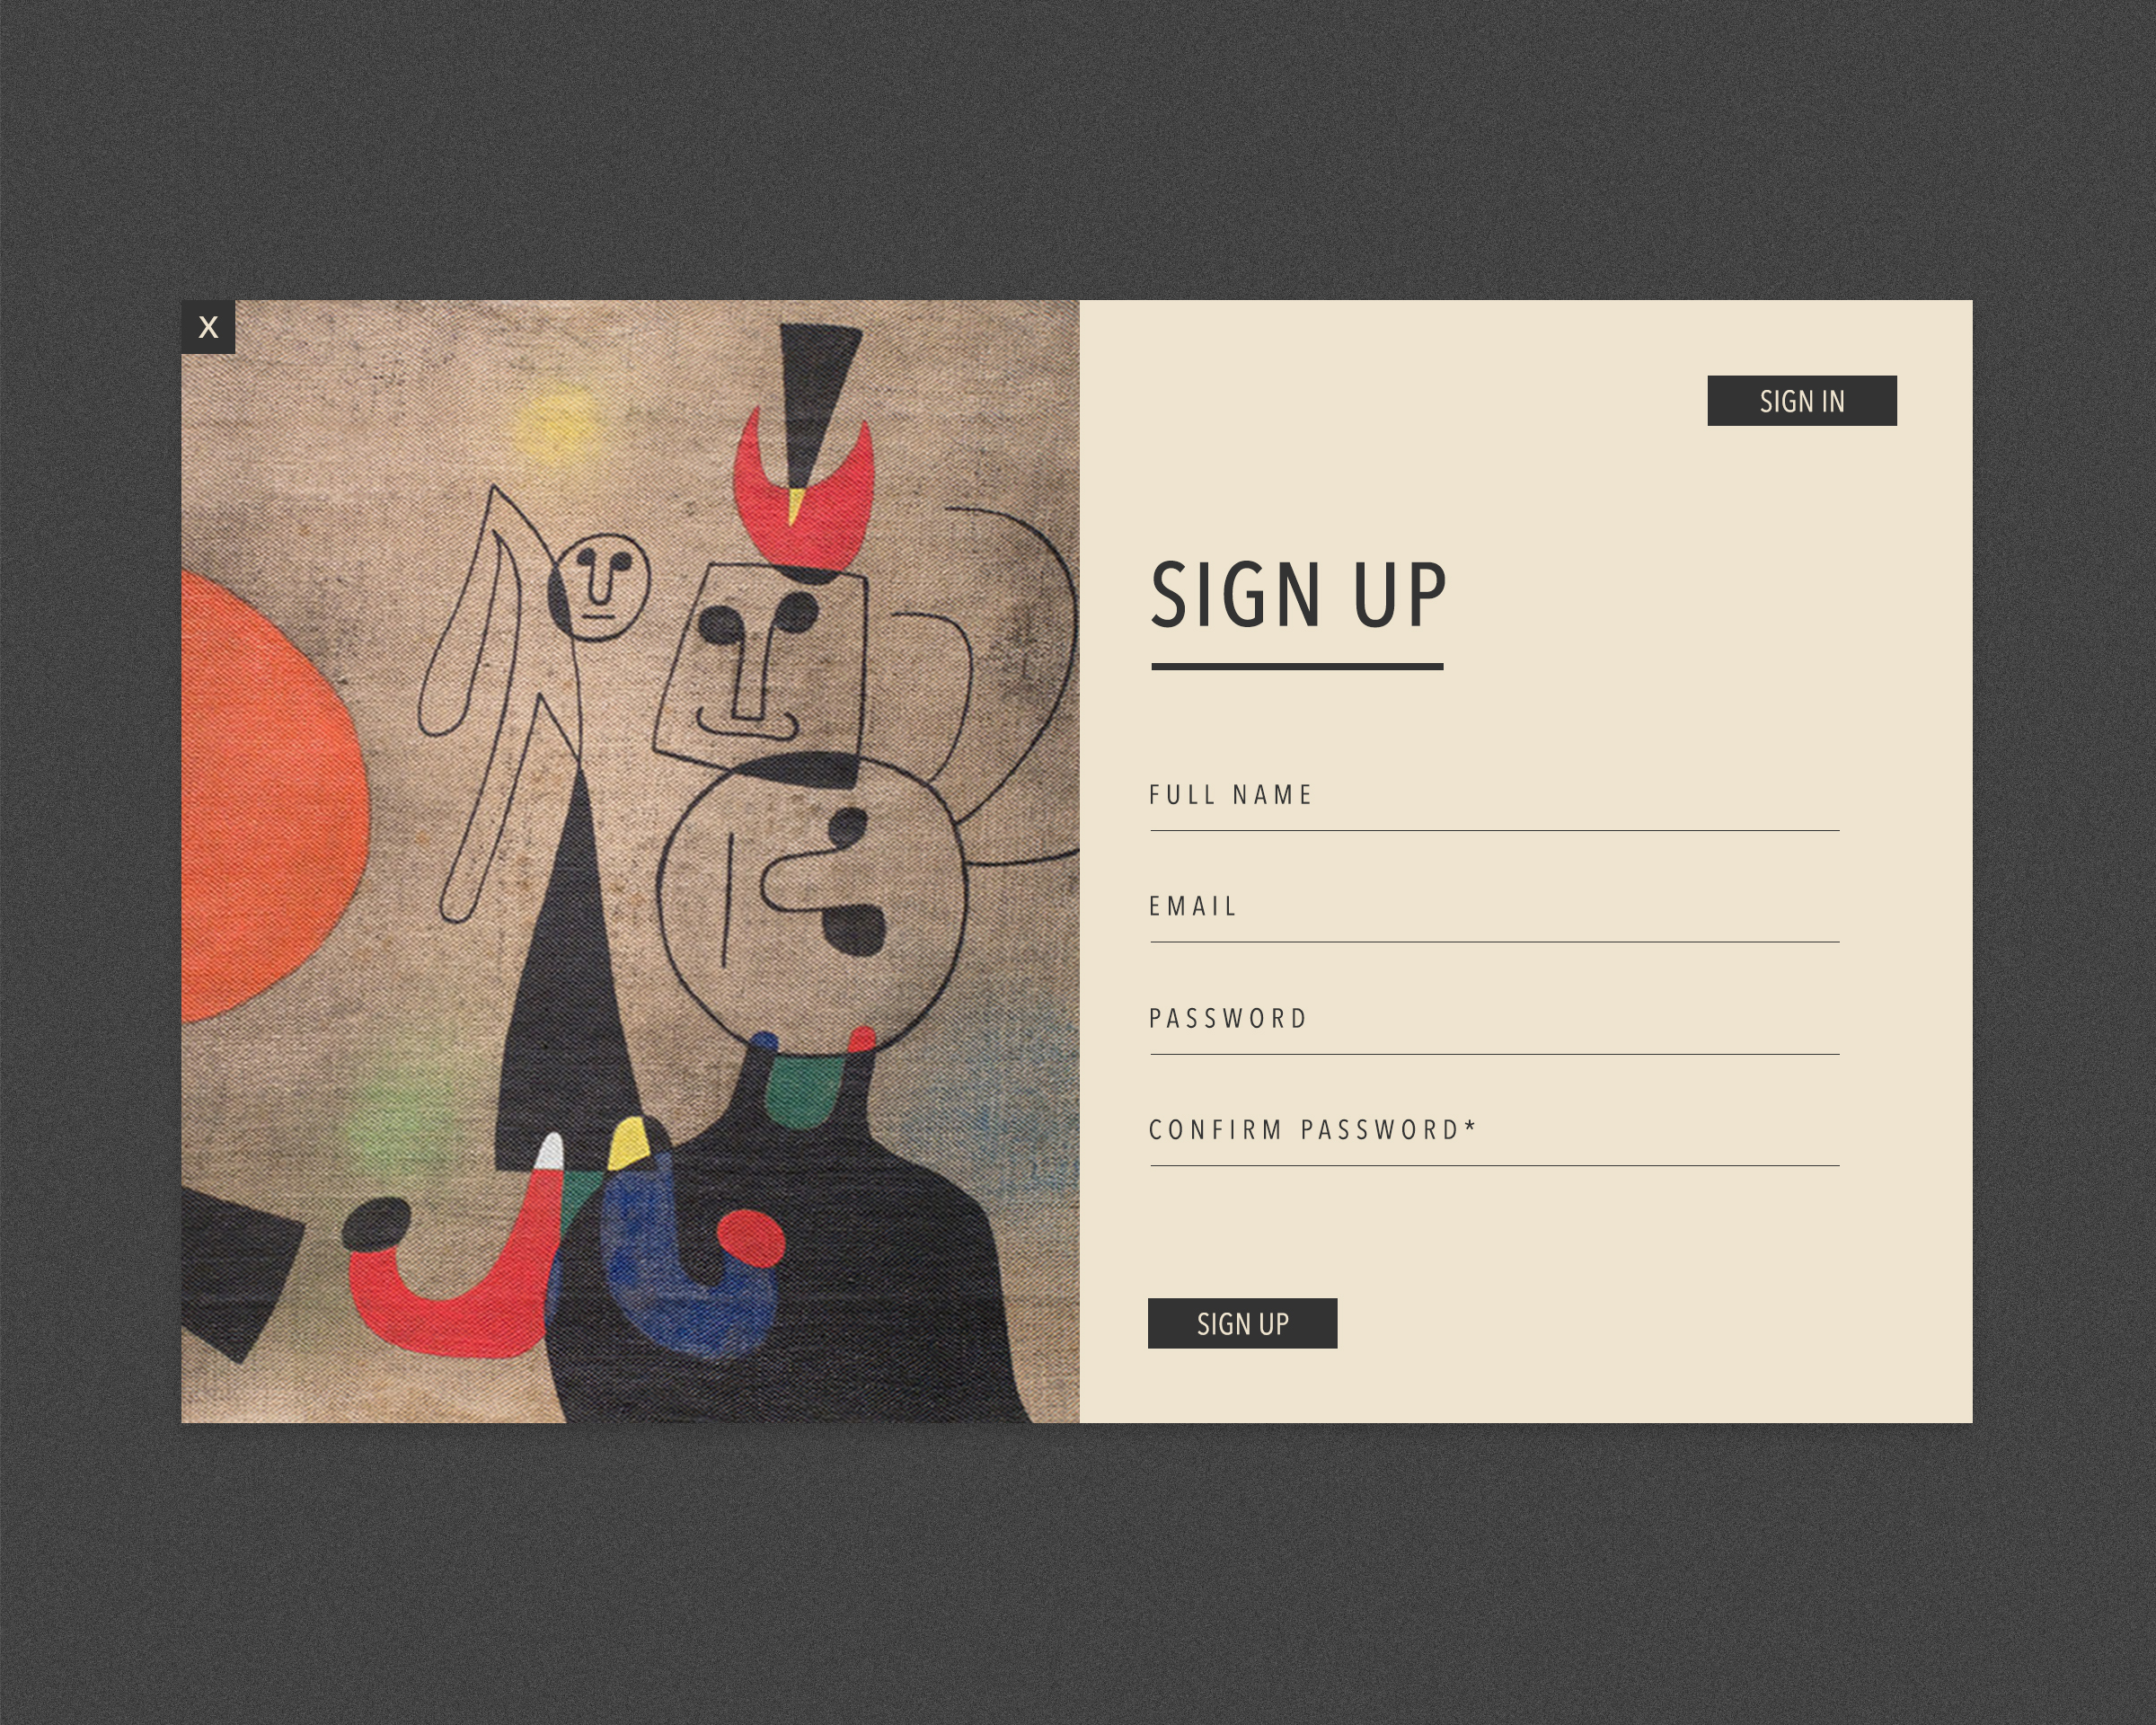 001 / sign up